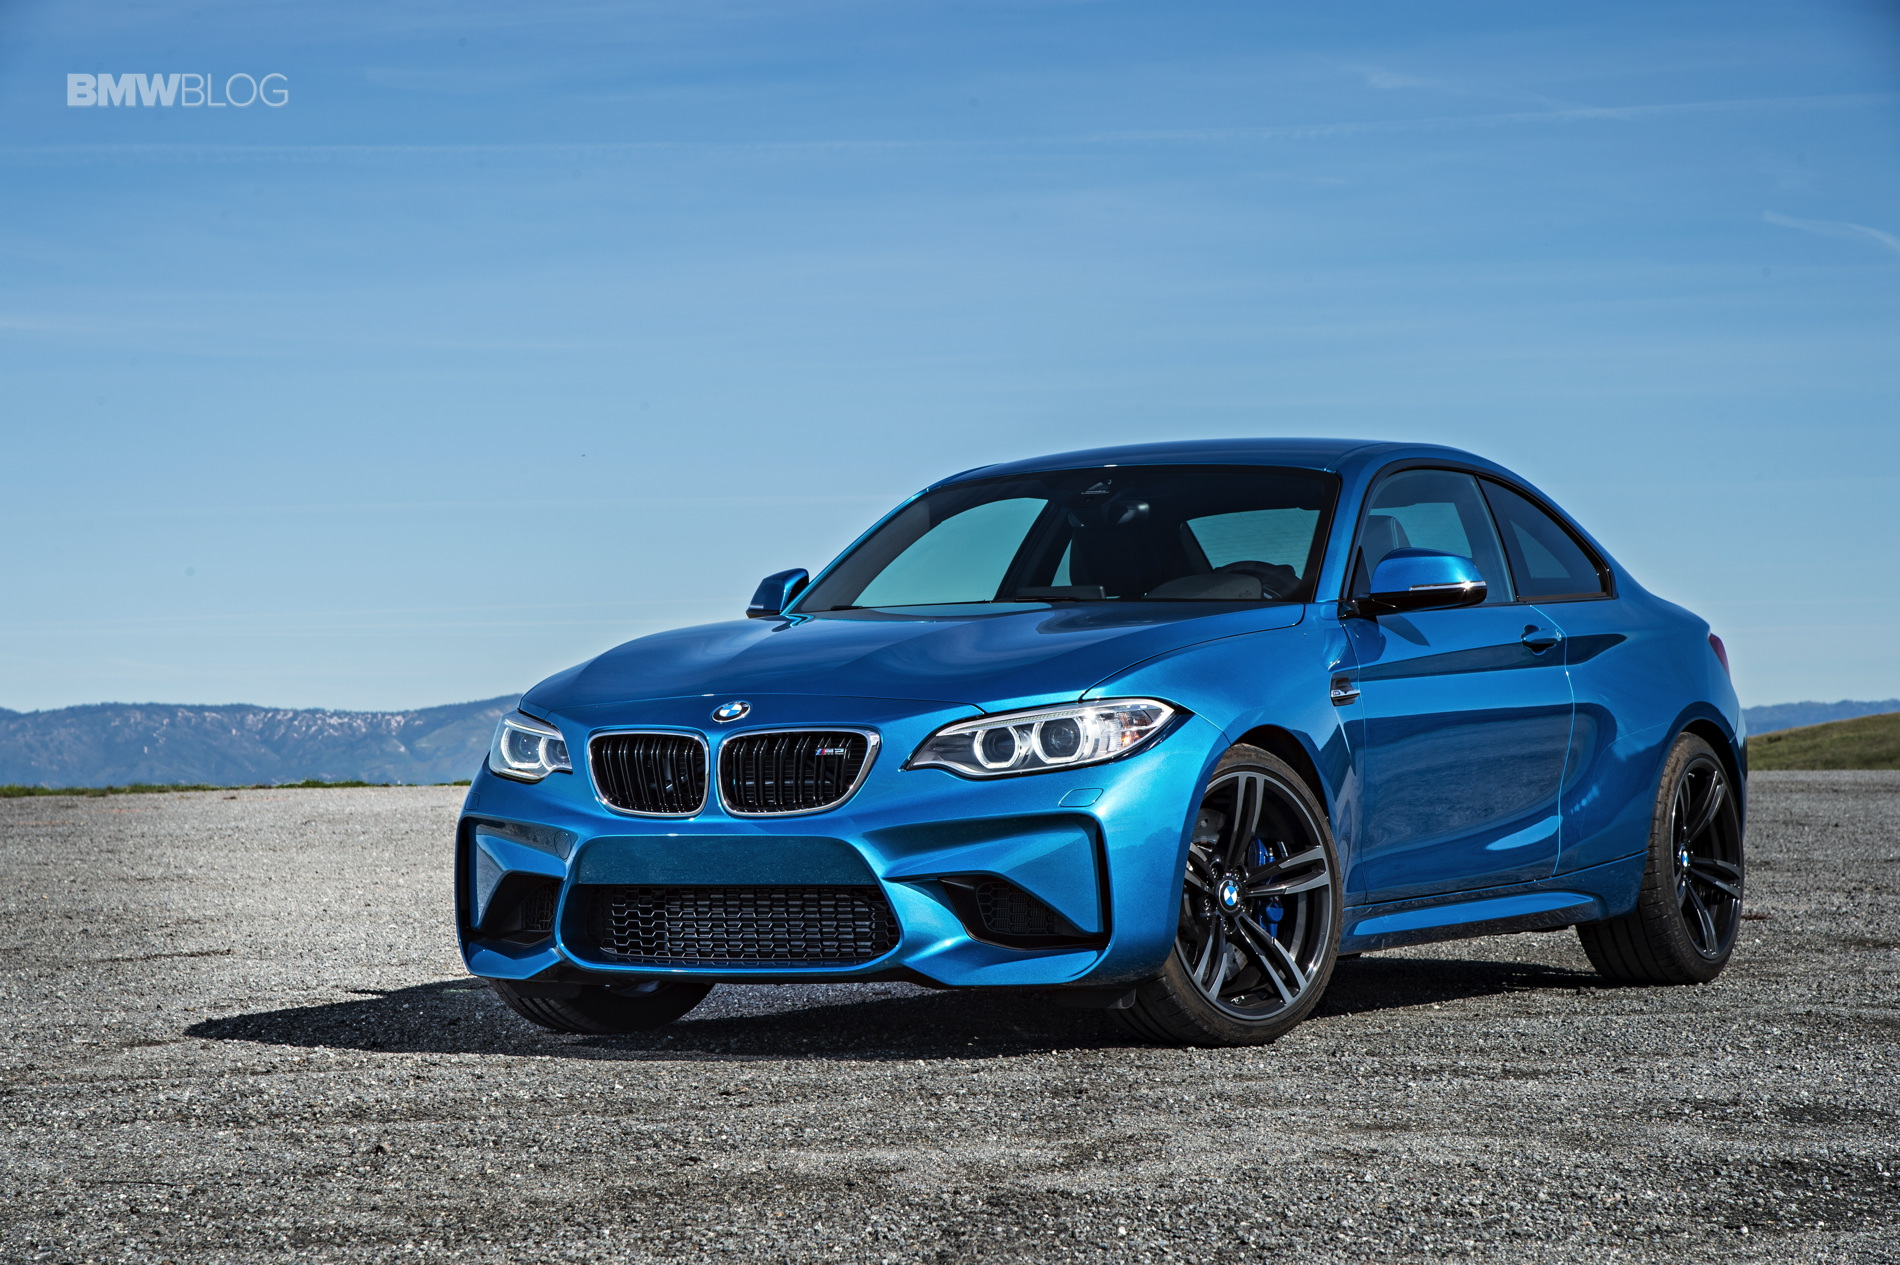 The Grand Tour La Bmw M2 Protagonista Della Prima Puntata